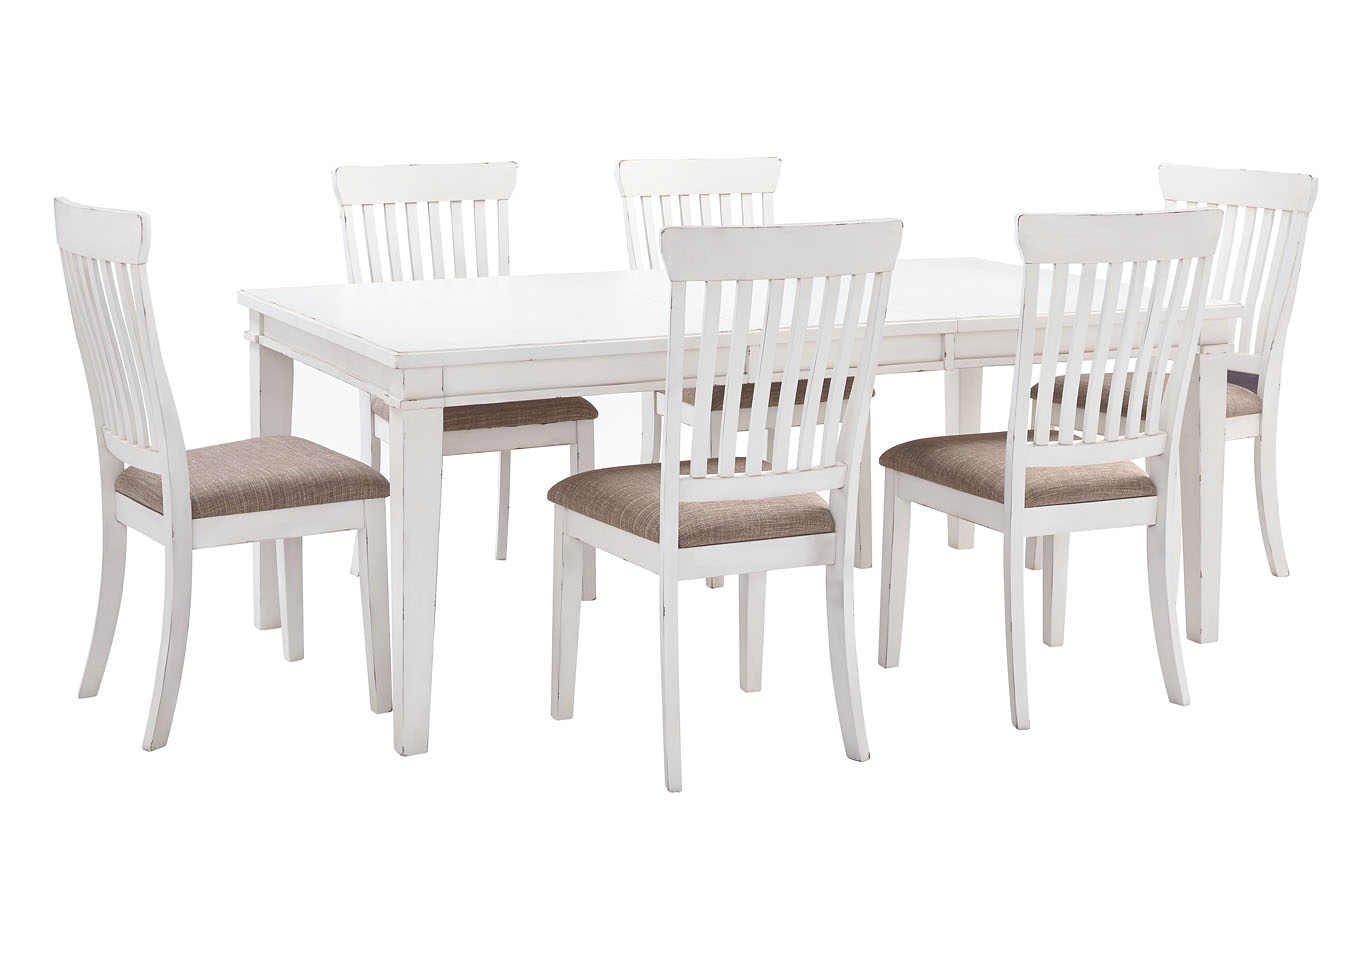 White Dining Room Chair Stringer Furniture Danbeck White Dining Table Set W Dining Table